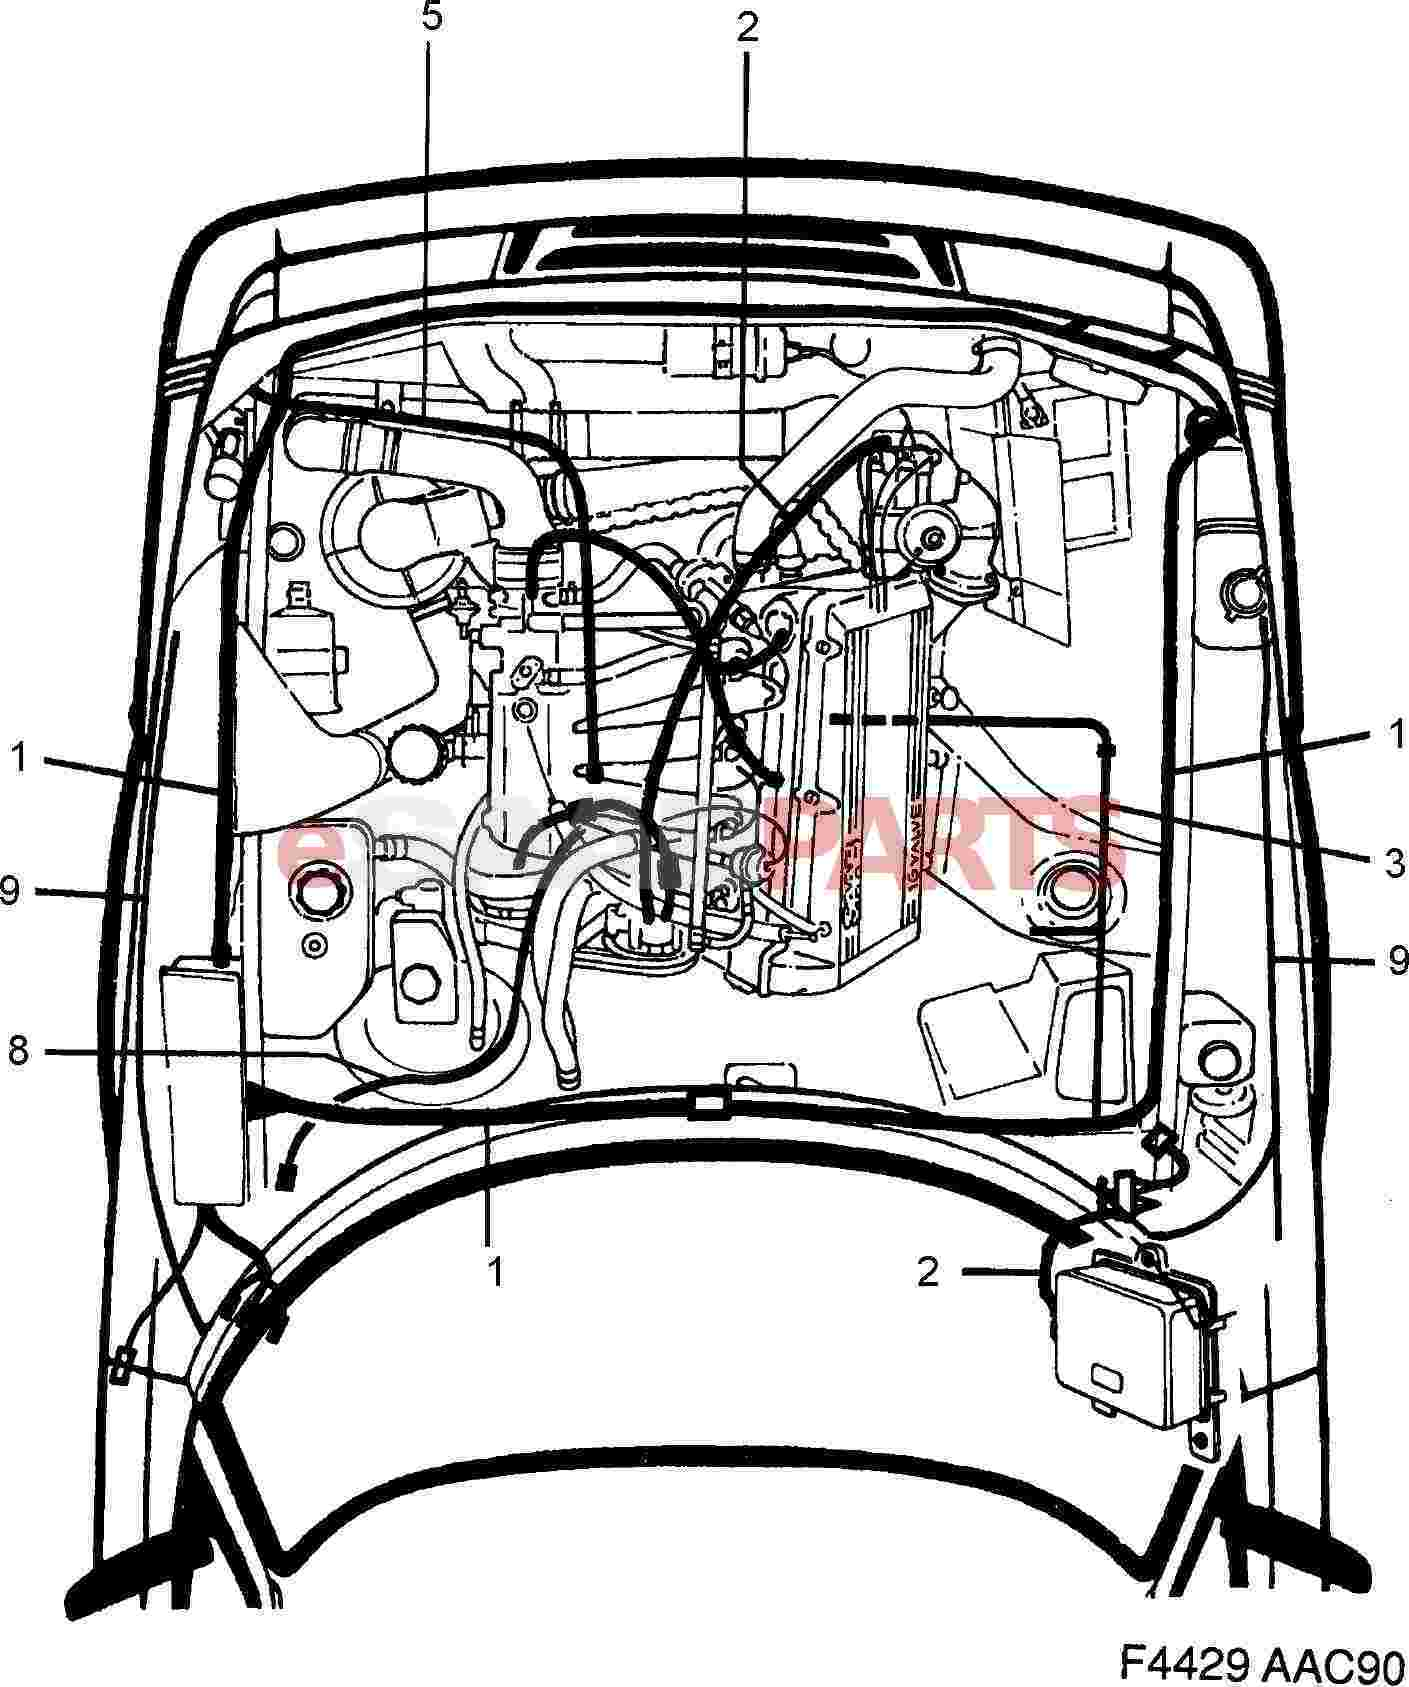 4663019  saab cable harness